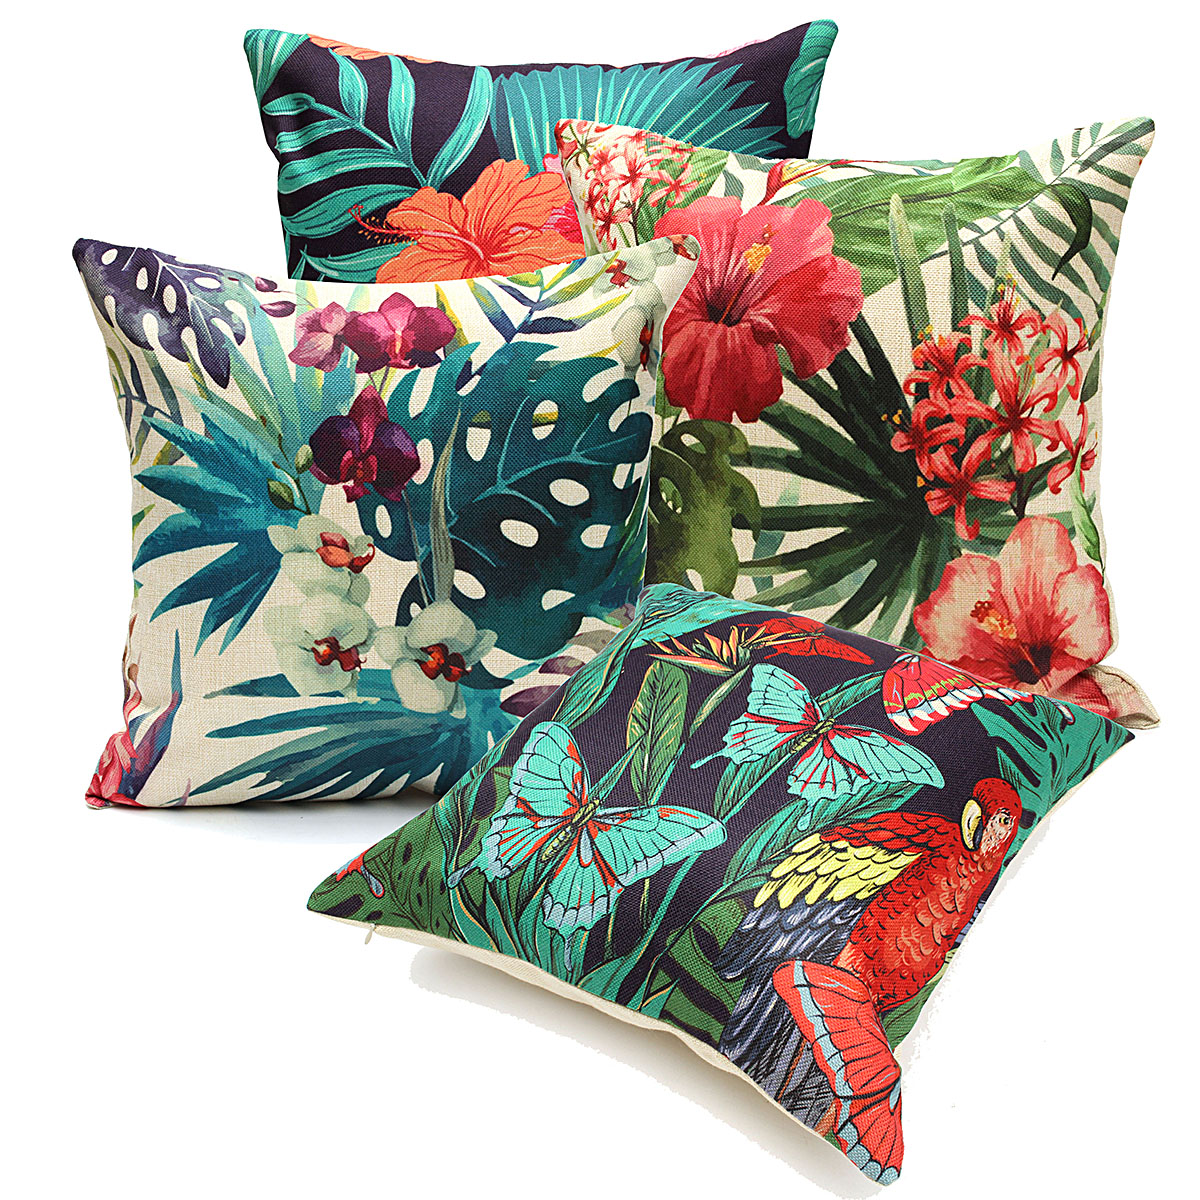 Meigar Tropical Plant Flamingo Couch Cushion Pillow Covers